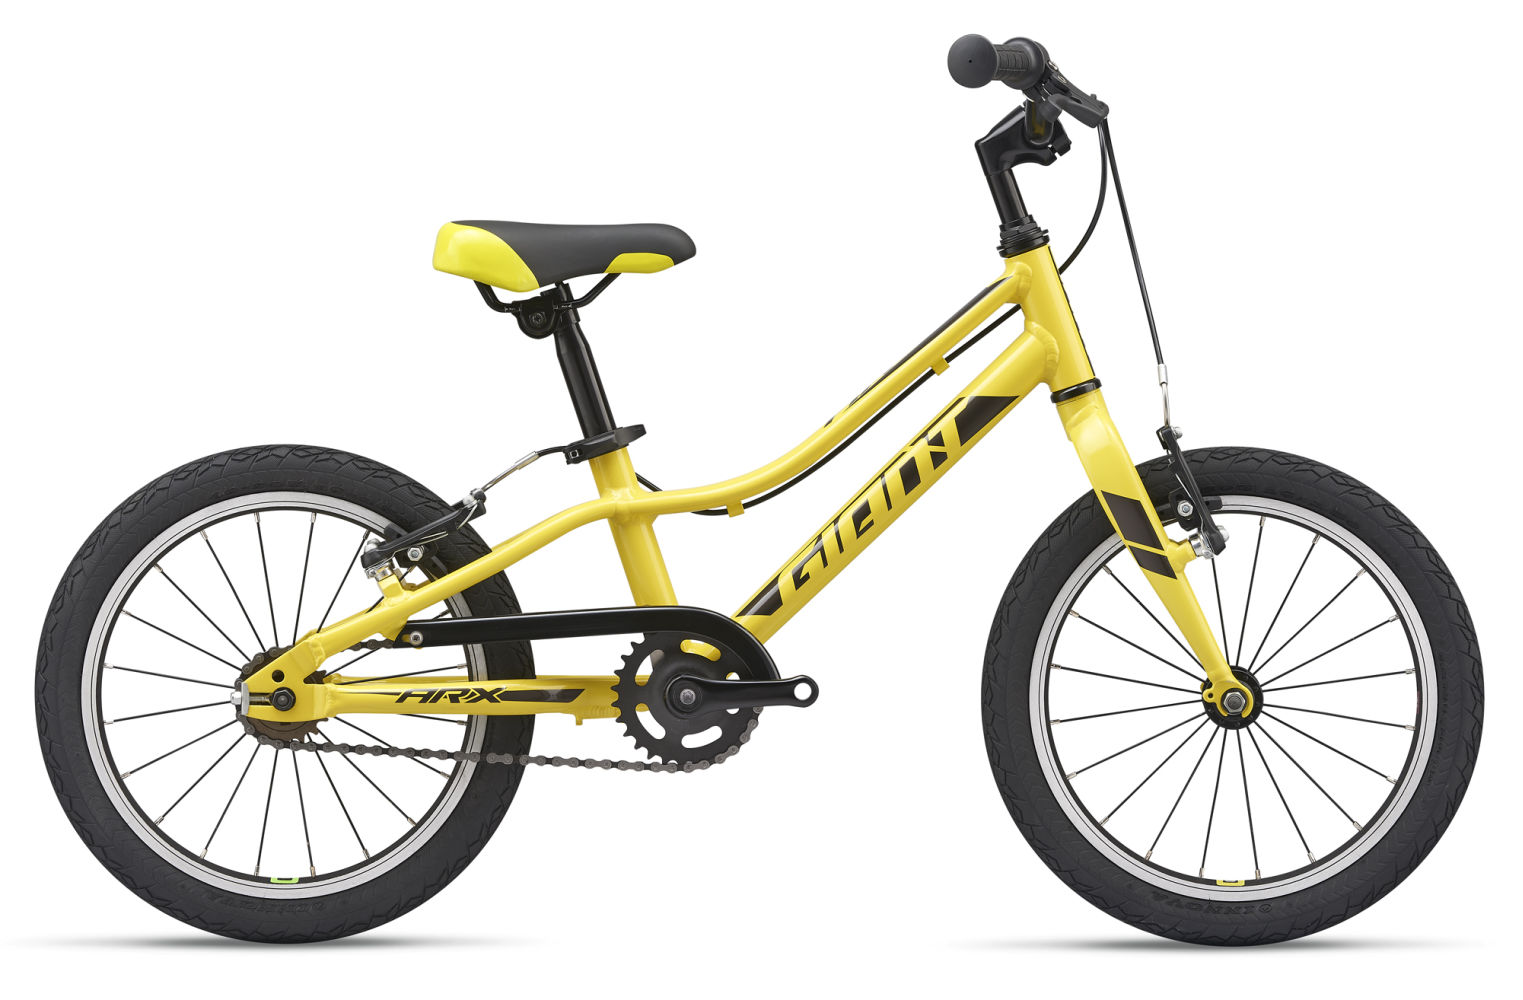 2019 Giant Arx 16 Childs Bike In Yellow 163 235 00